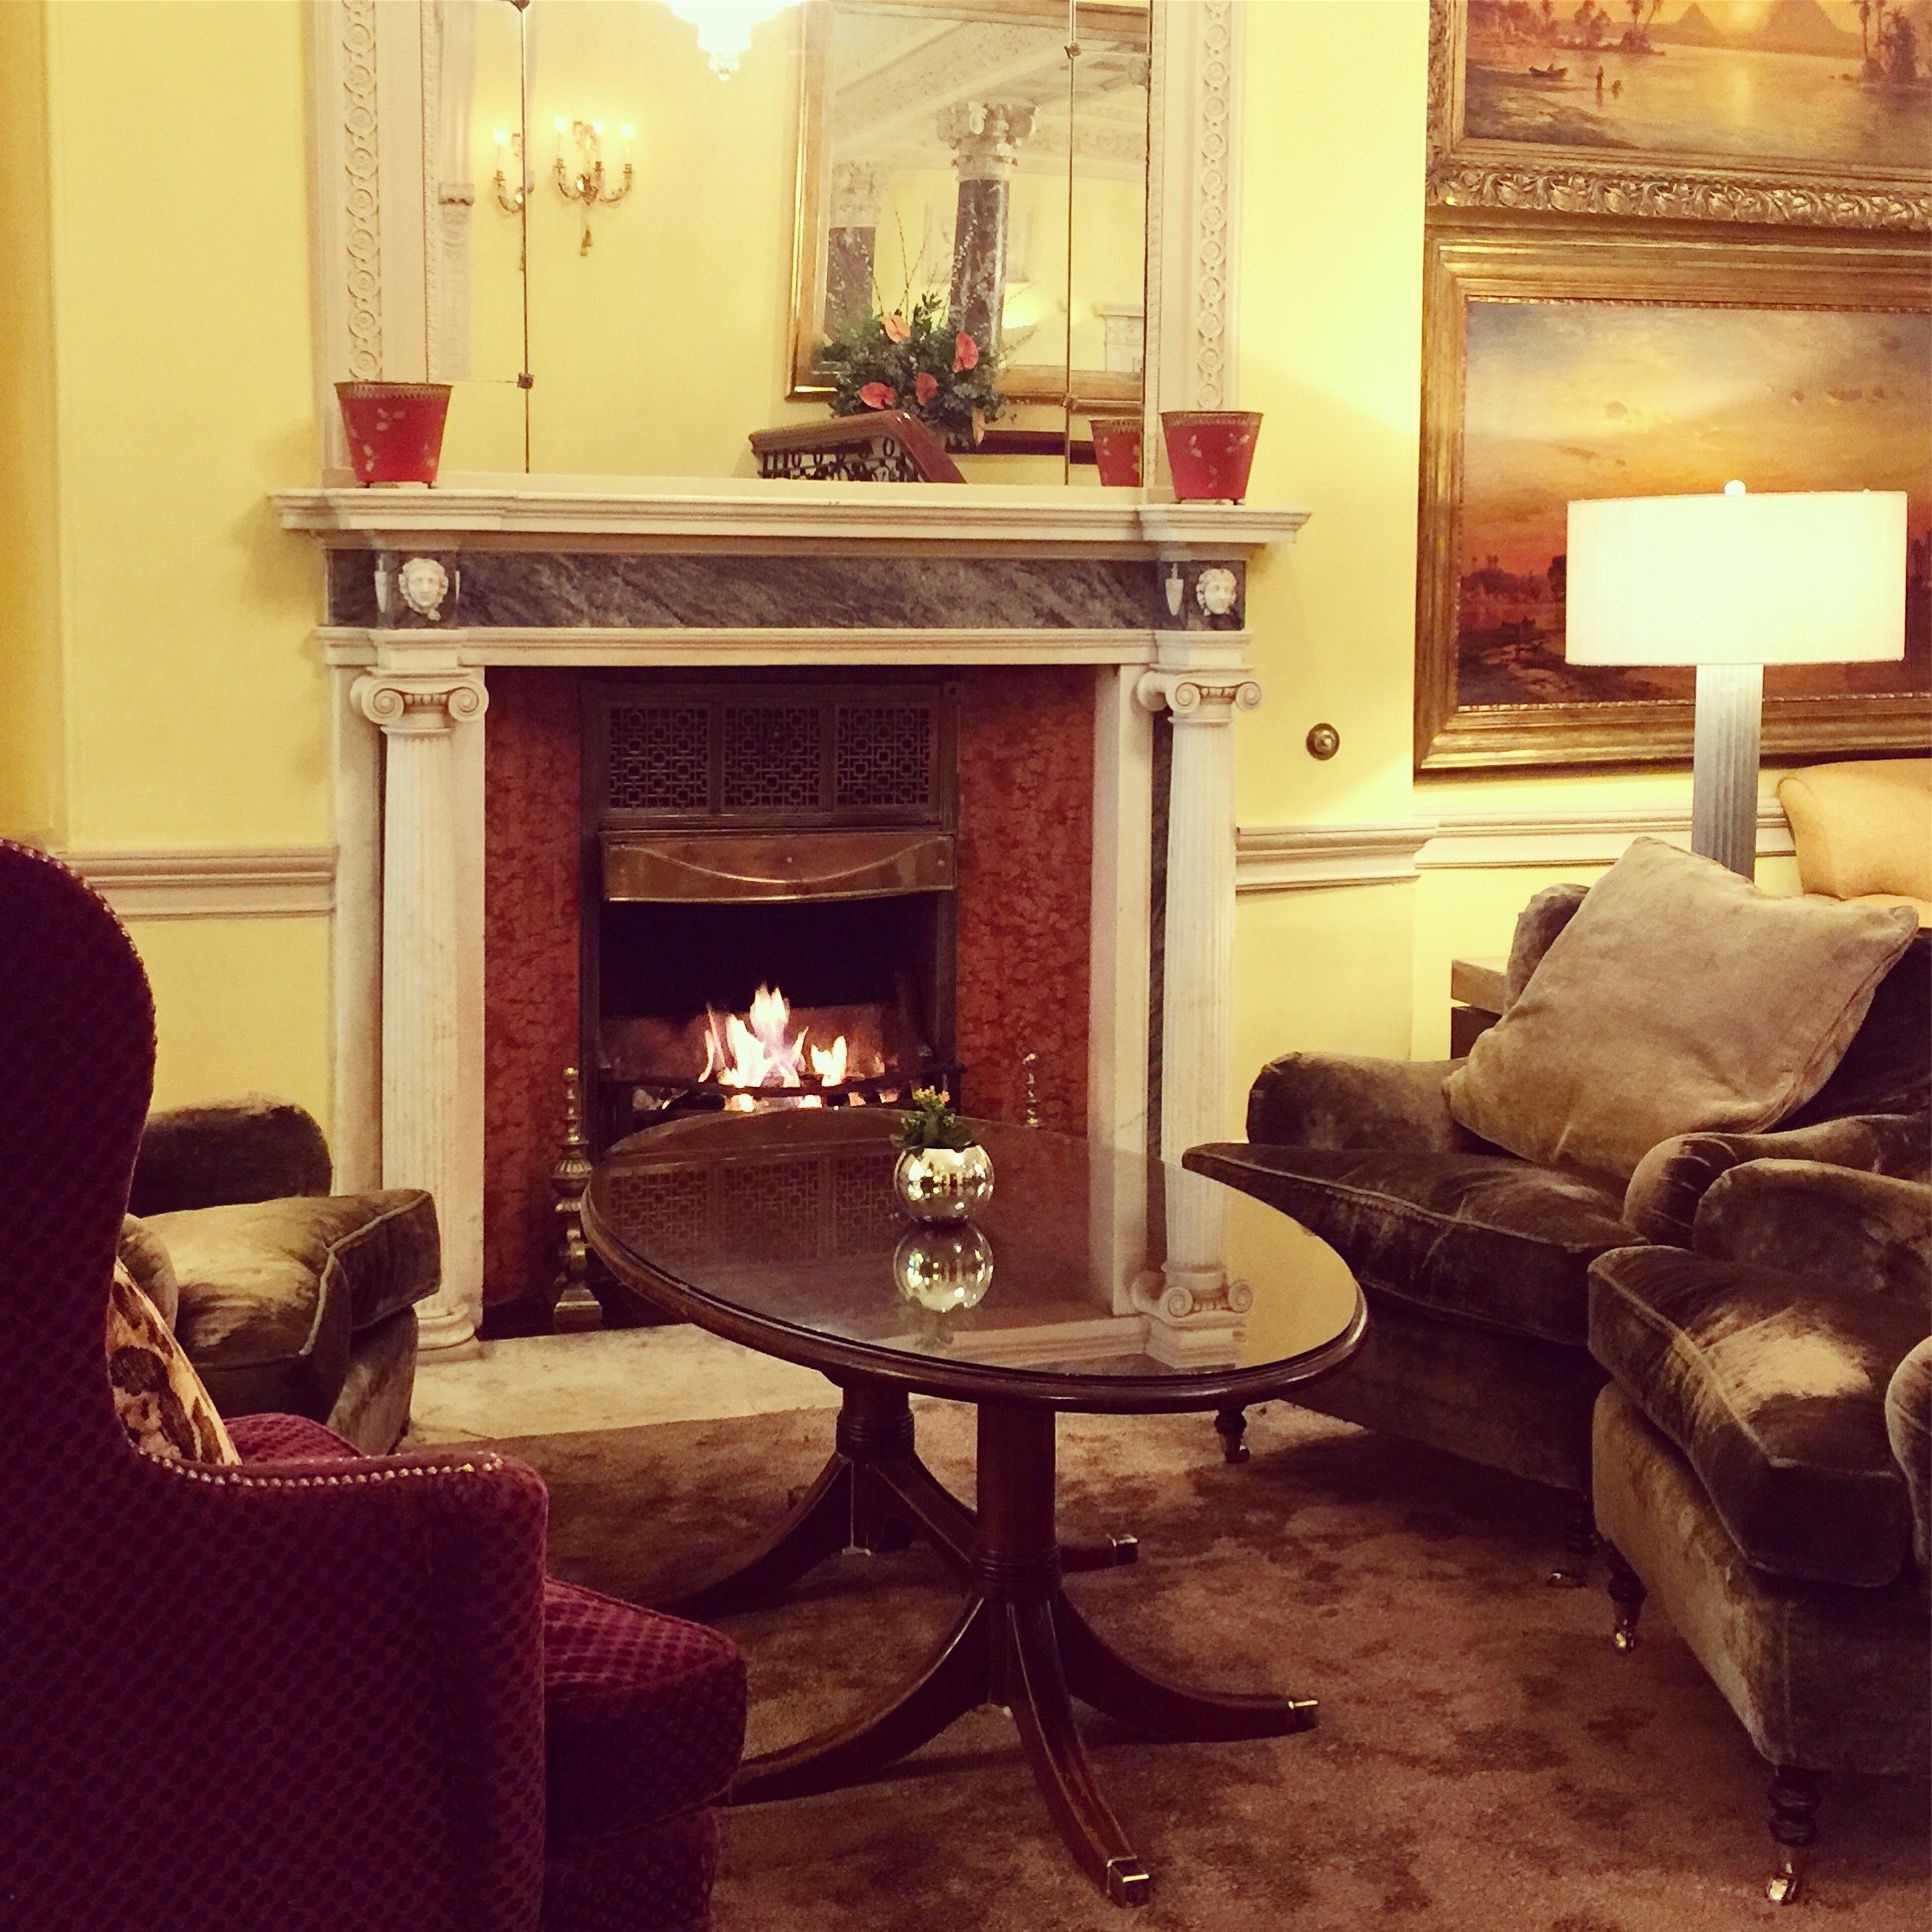 The days are getting colder which gives us the perfect excuse to stay inside by the roaring fire!